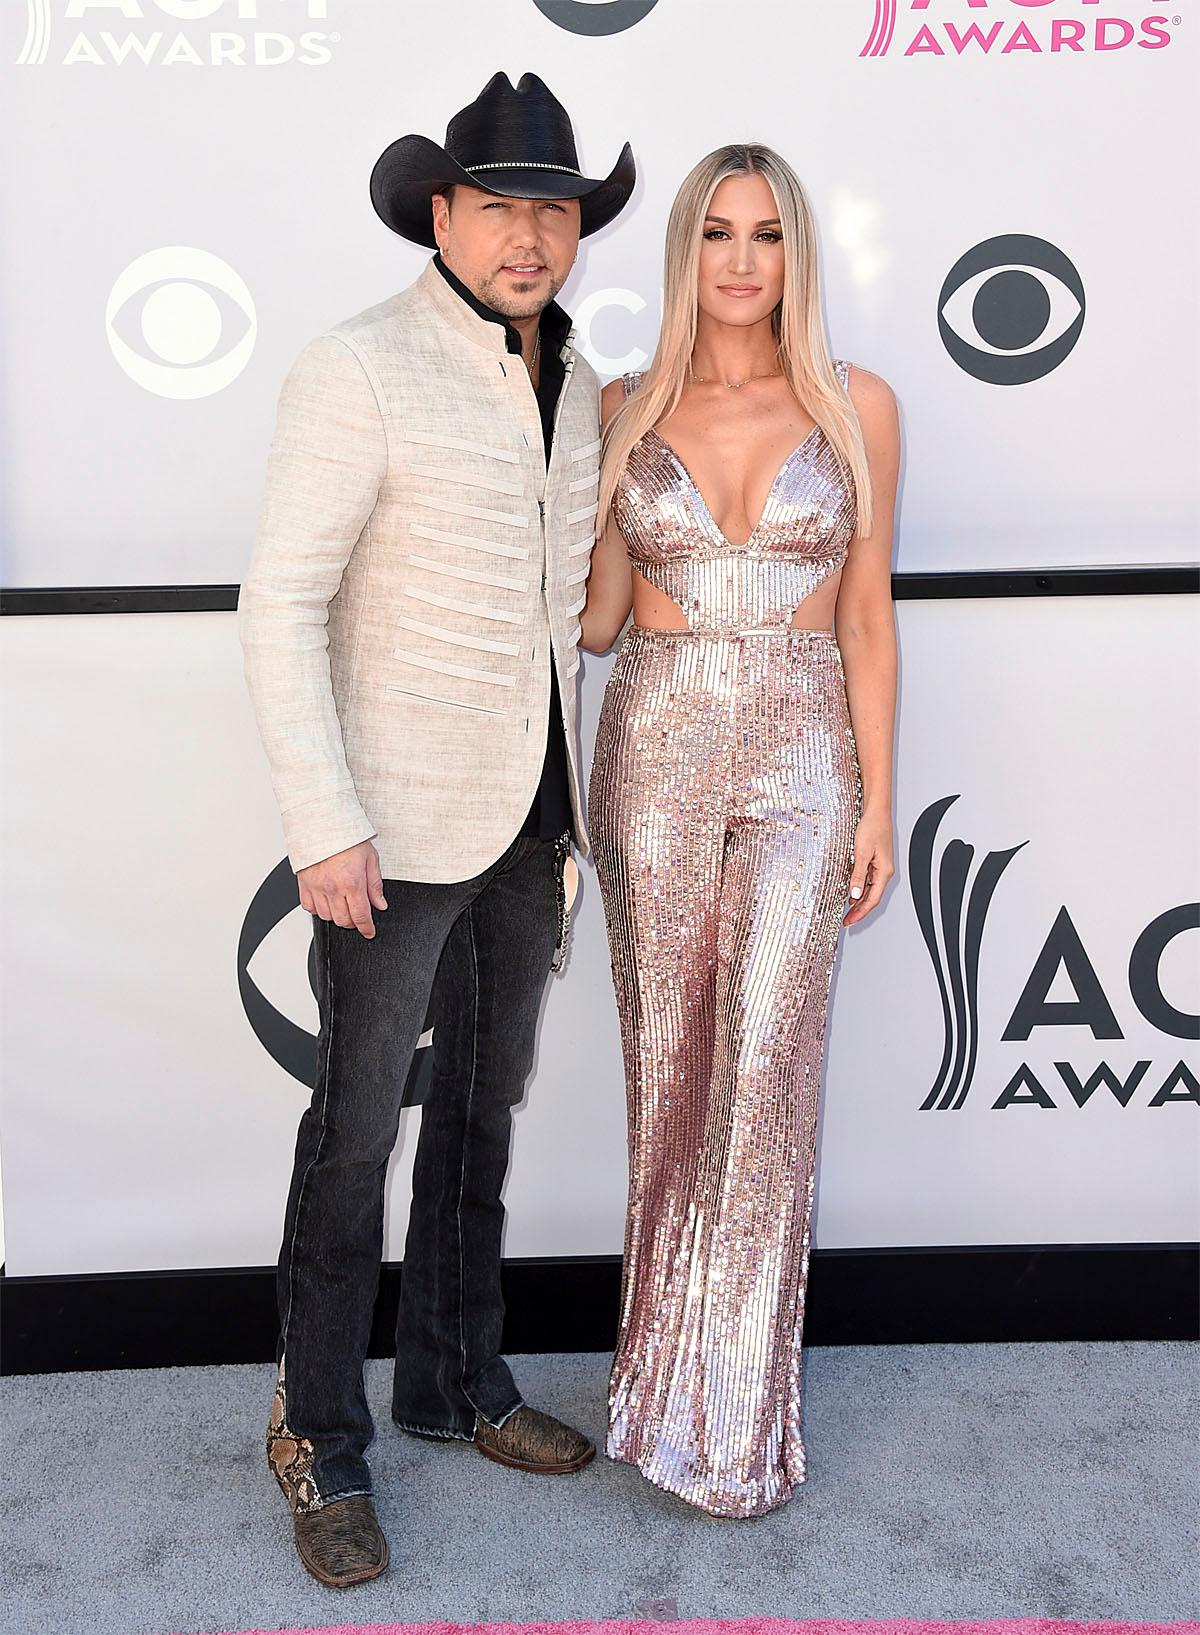 Jason Aldean, left, and Brittany Kerr arrive at the 52nd annual Academy of Country Music Awards at the T-Mobile Arena on Sunday, April 2, 2017, in Las Vegas. (Photo by Jordan Strauss/Invision/AP)